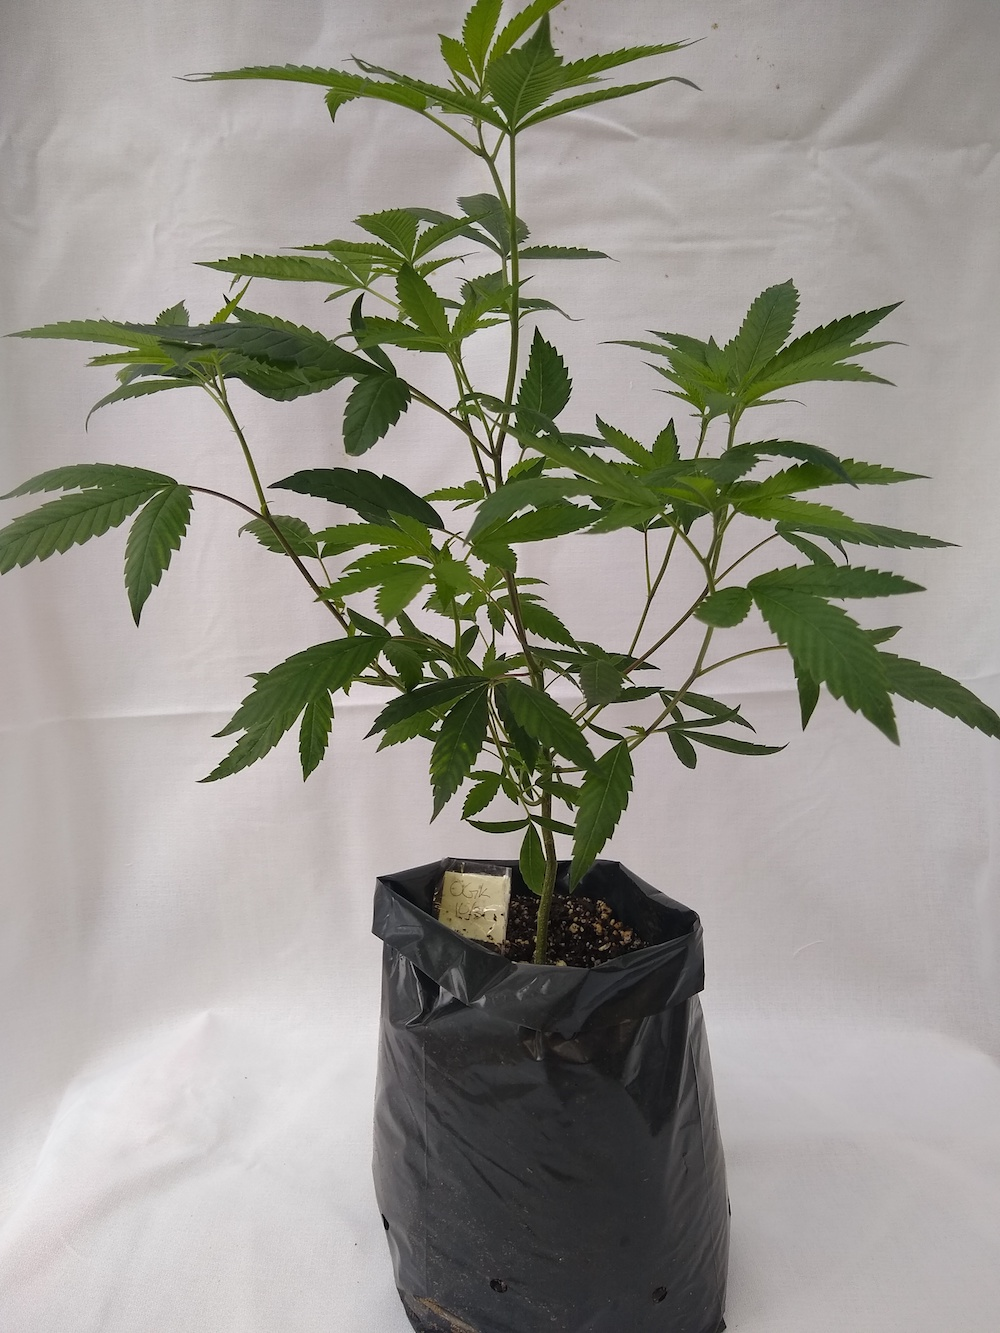 OG Kush - Indica/Hybrid  Genetics - (Emerald Triangle x Hindu Kush)  Pre-teen staged and pre-rooted in rock wool, planted in organic soil   Suggested retail  - $25 each